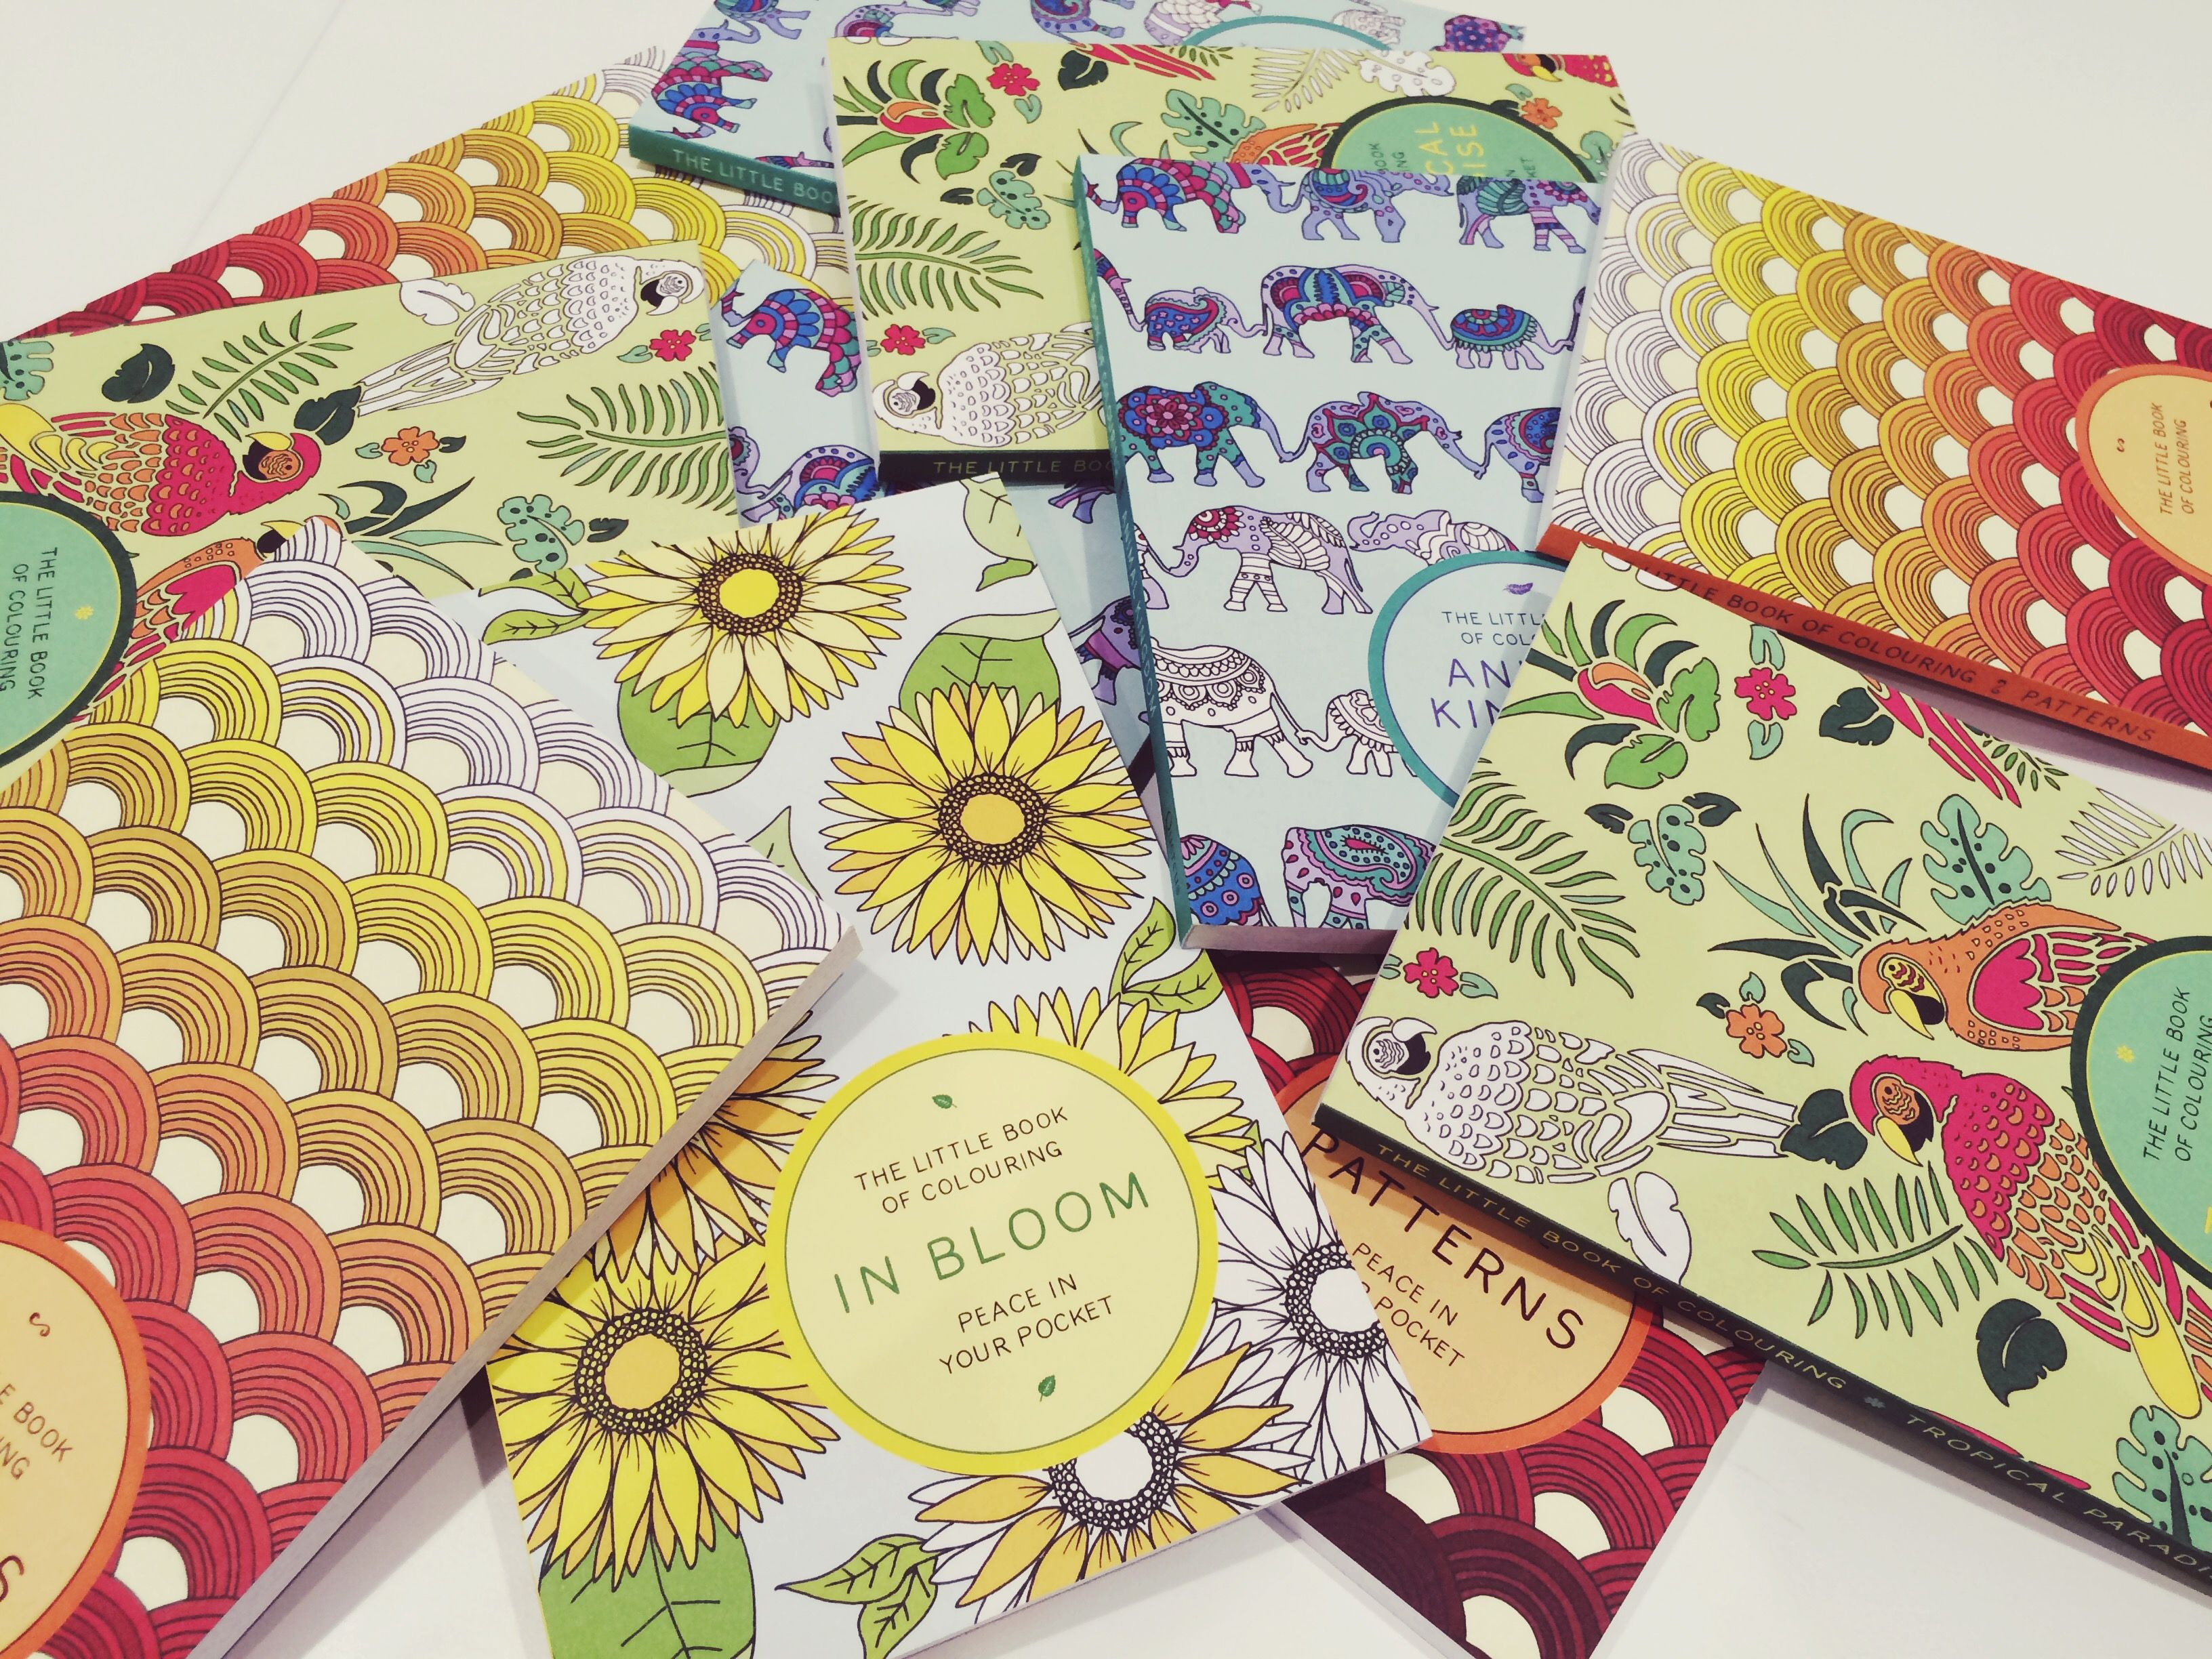 Little book of coloring for mindfulness - What A Beautiful Bundle Of Books The Four Titles In The Little Book Of Colouring